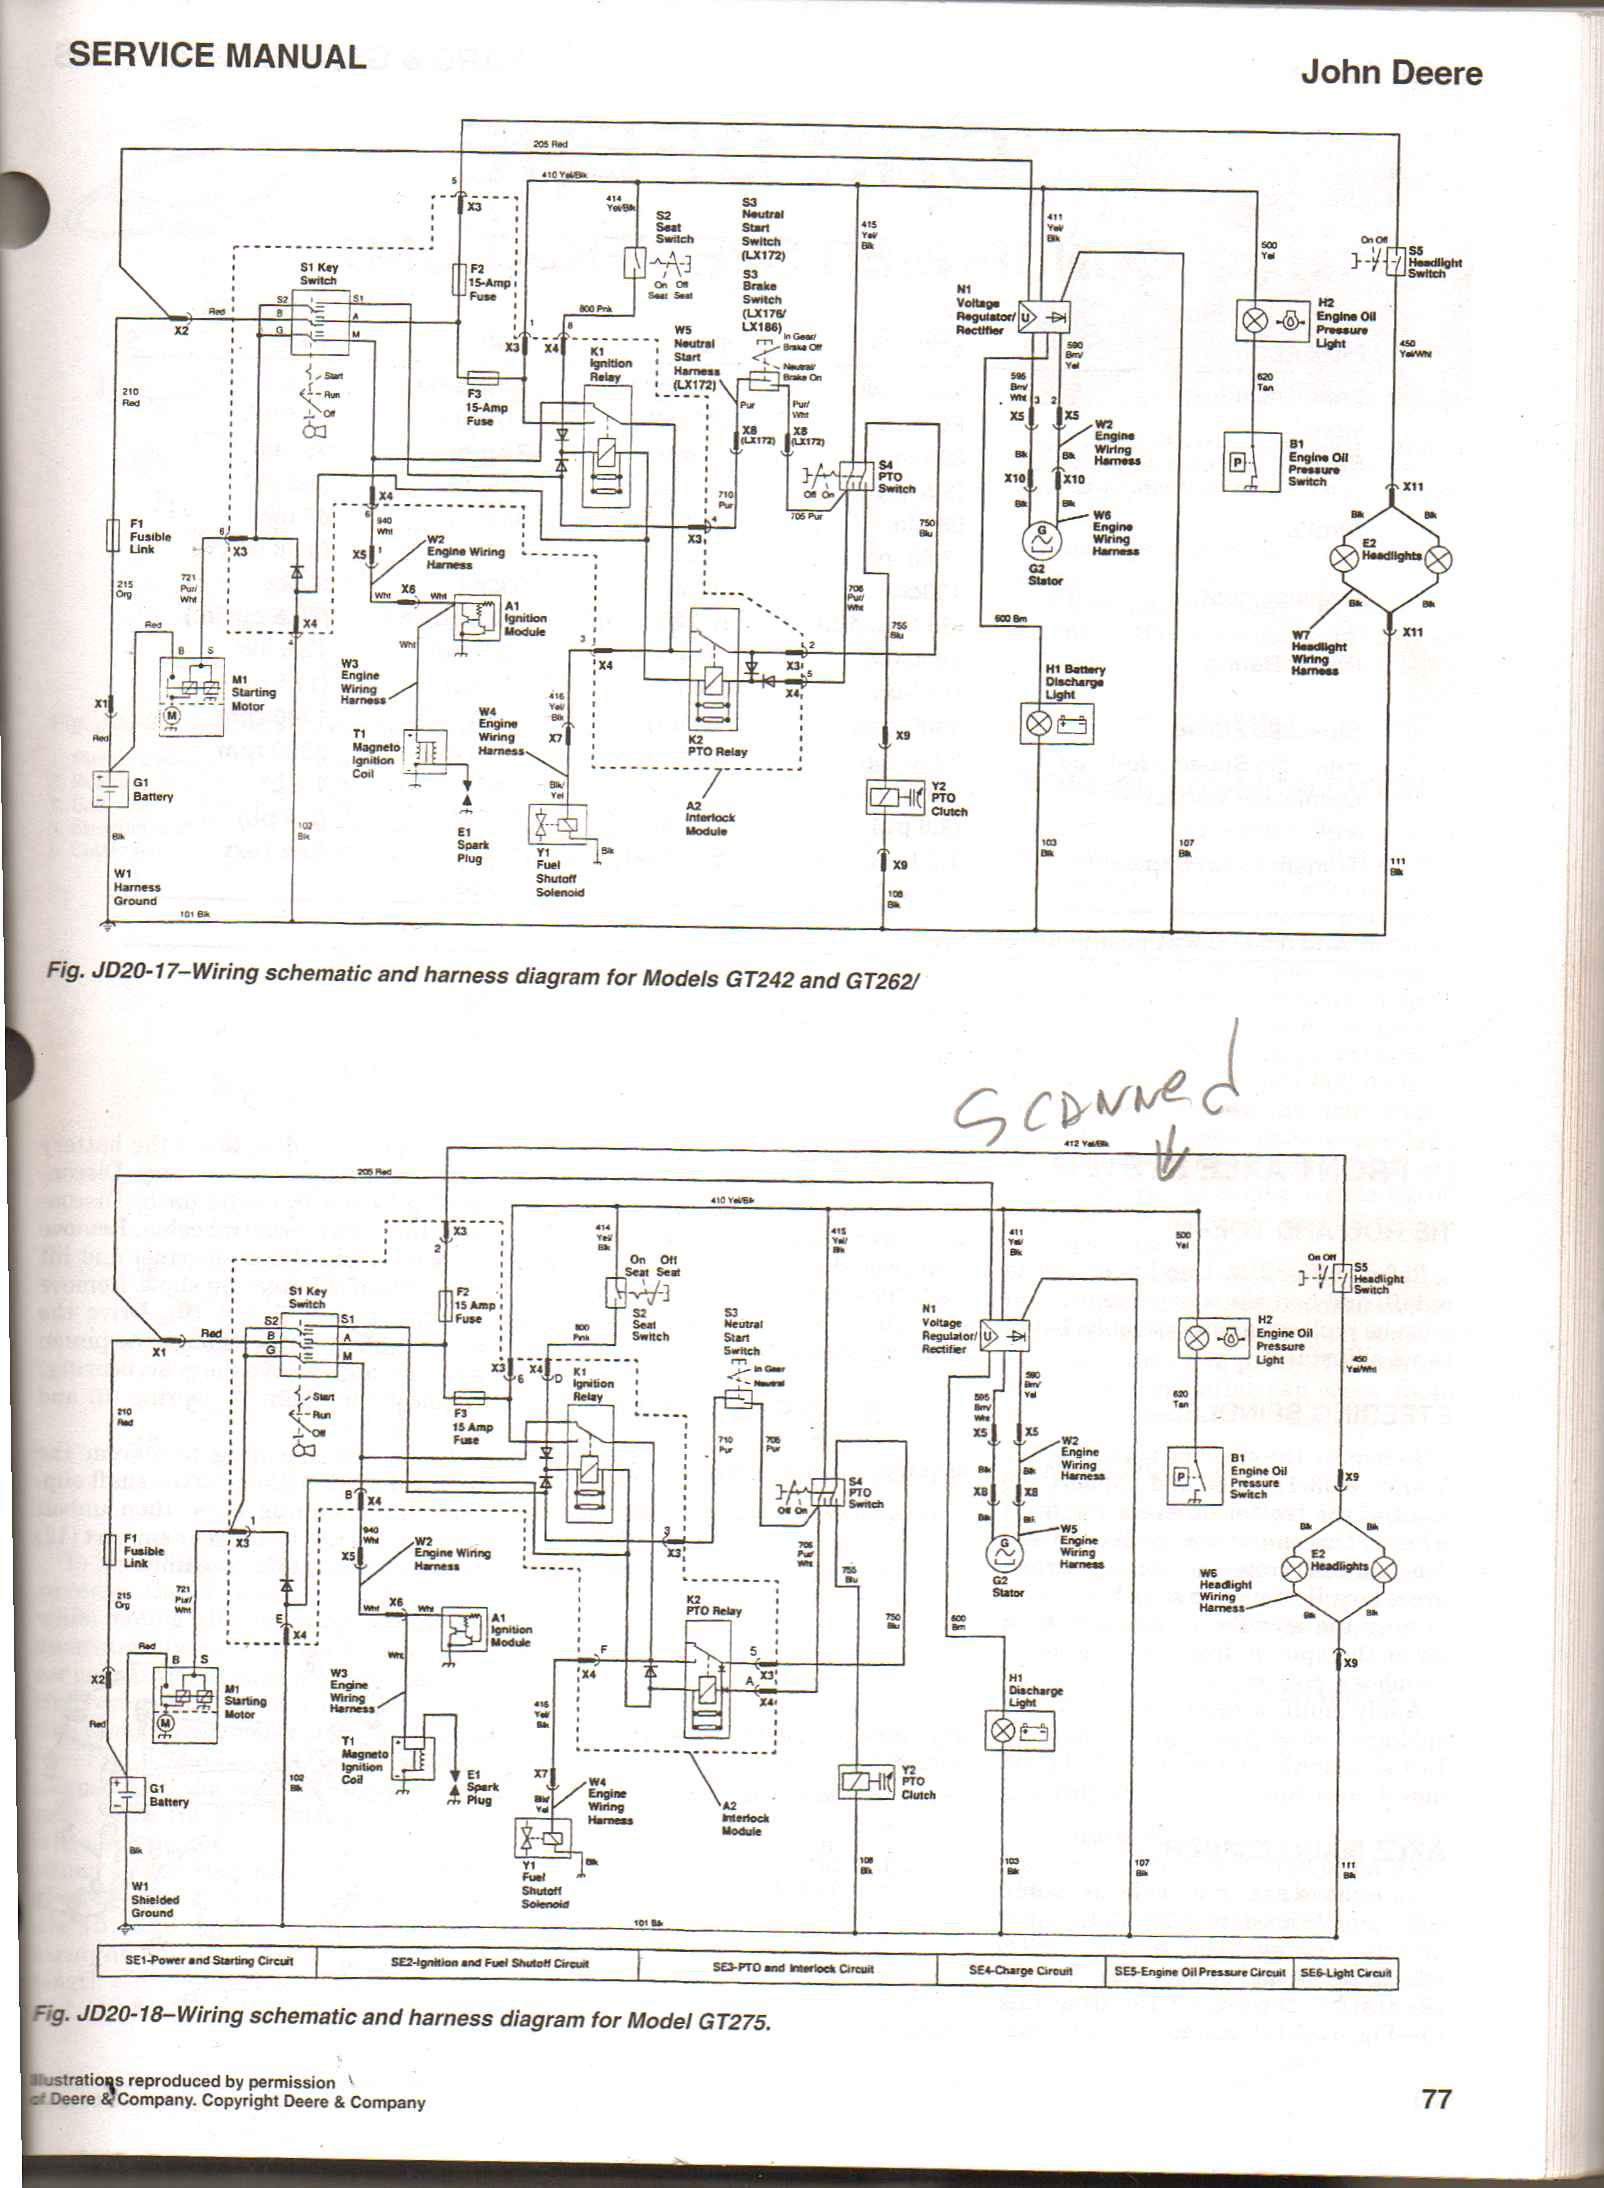 John Deere Electrical Diagrams Trusted Wiring 444h Fuse Box Diagram Besides B Tractor Further Decks